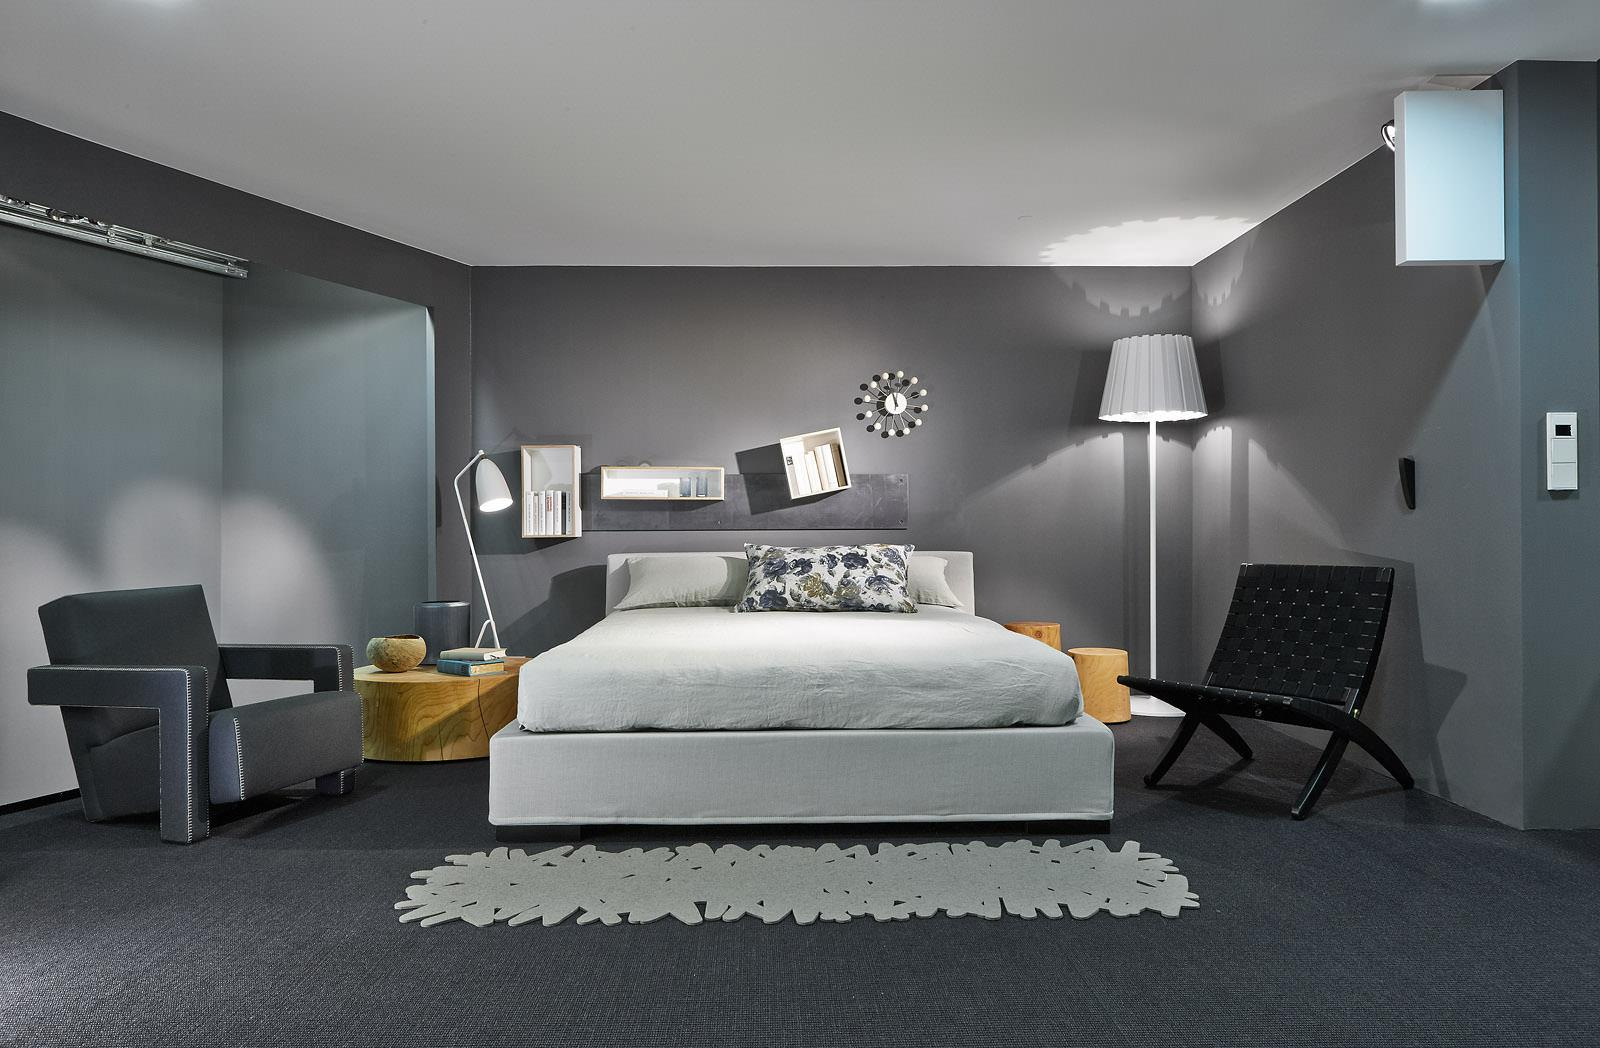 r ckzugsort bett wandregal teppich bettw sche s. Black Bedroom Furniture Sets. Home Design Ideas